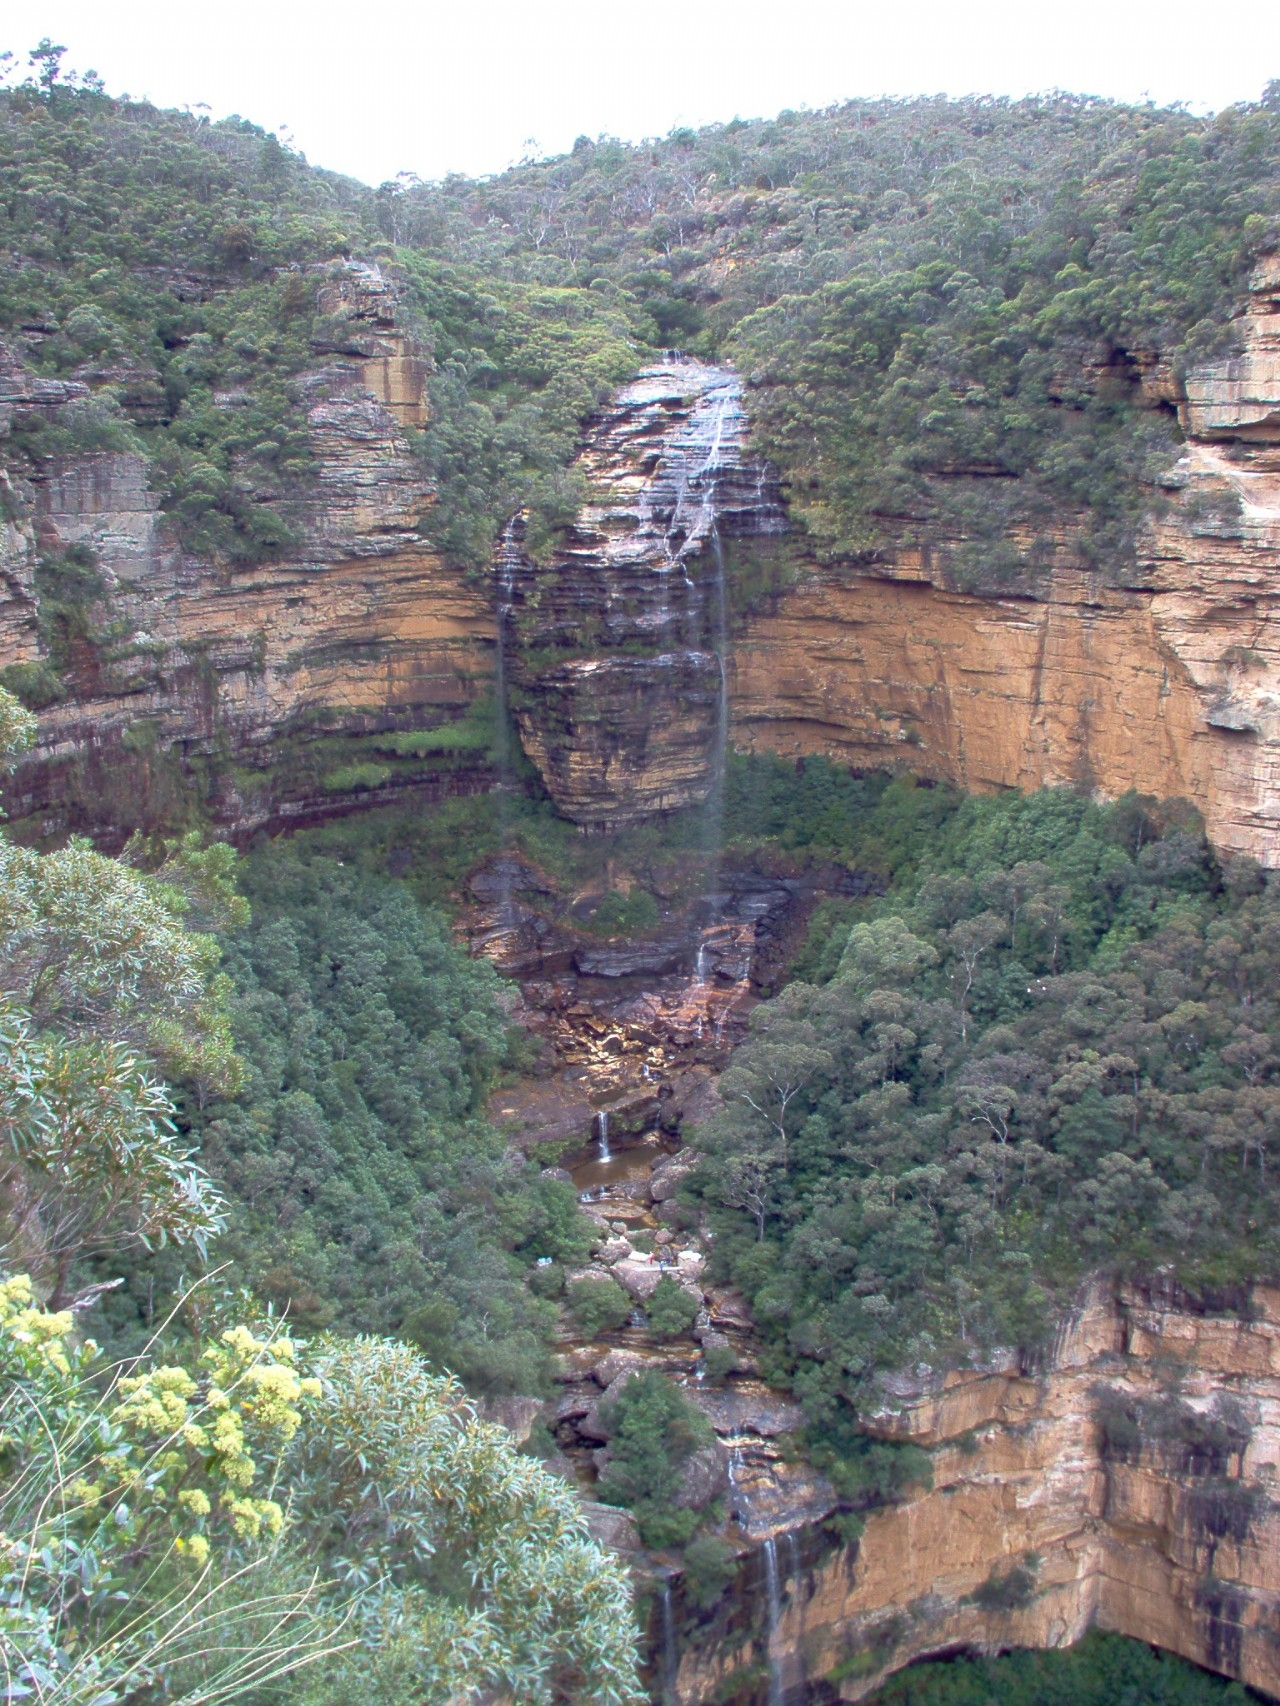 The Wentworth Falls